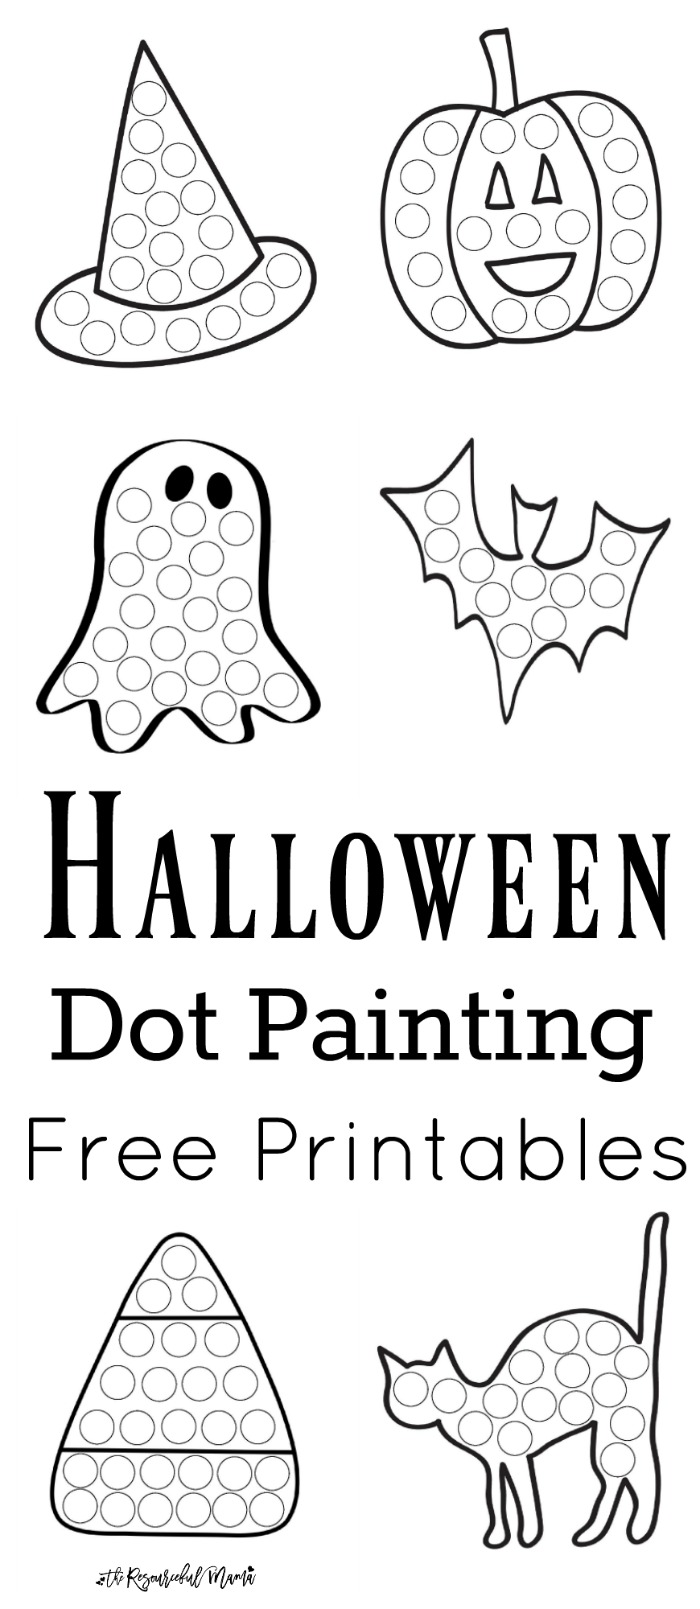 Lucrative image with printable halloween crafts